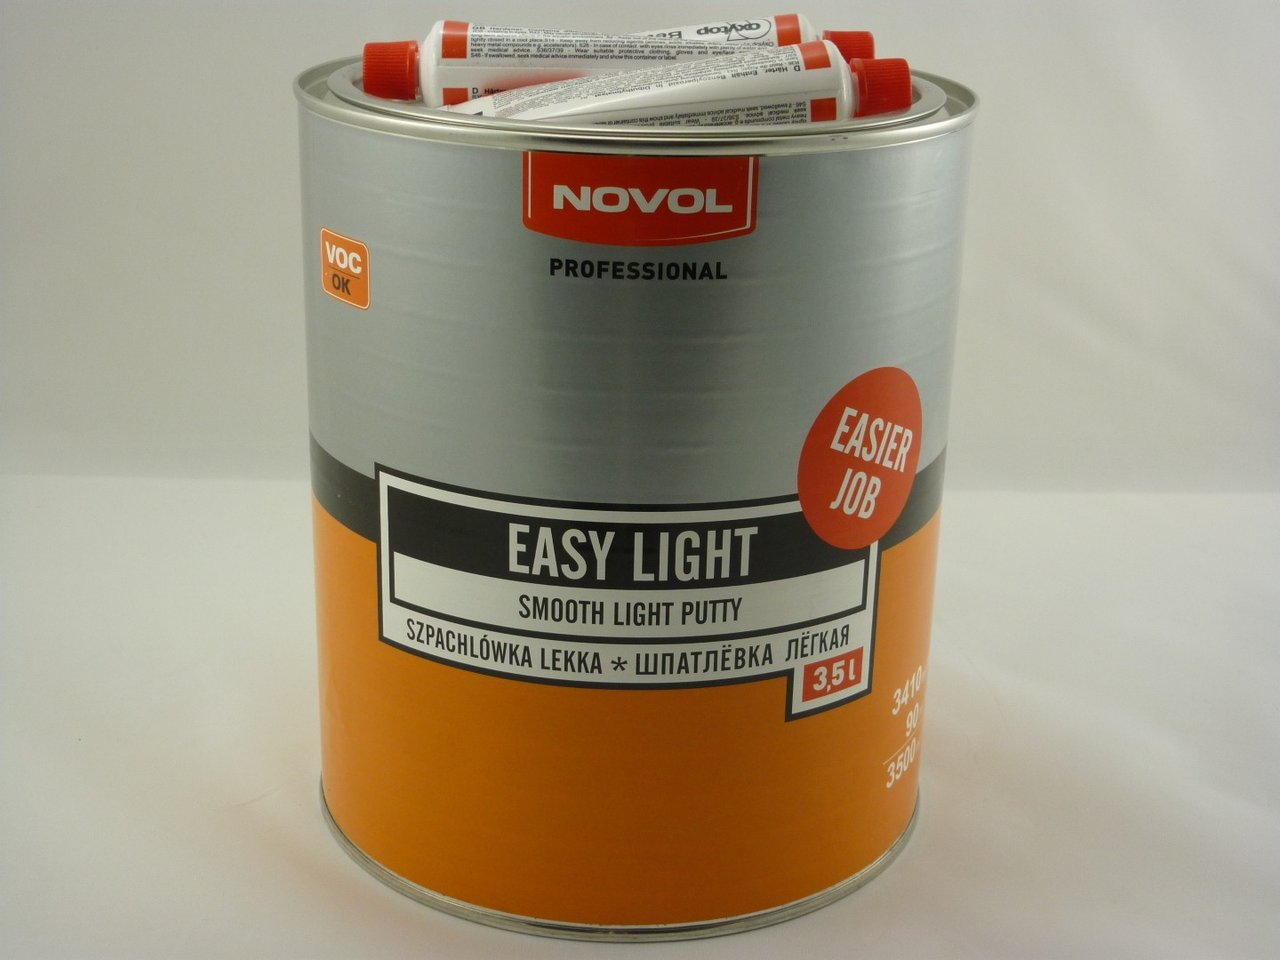 NOVOL Easi - Light 3.5 litre